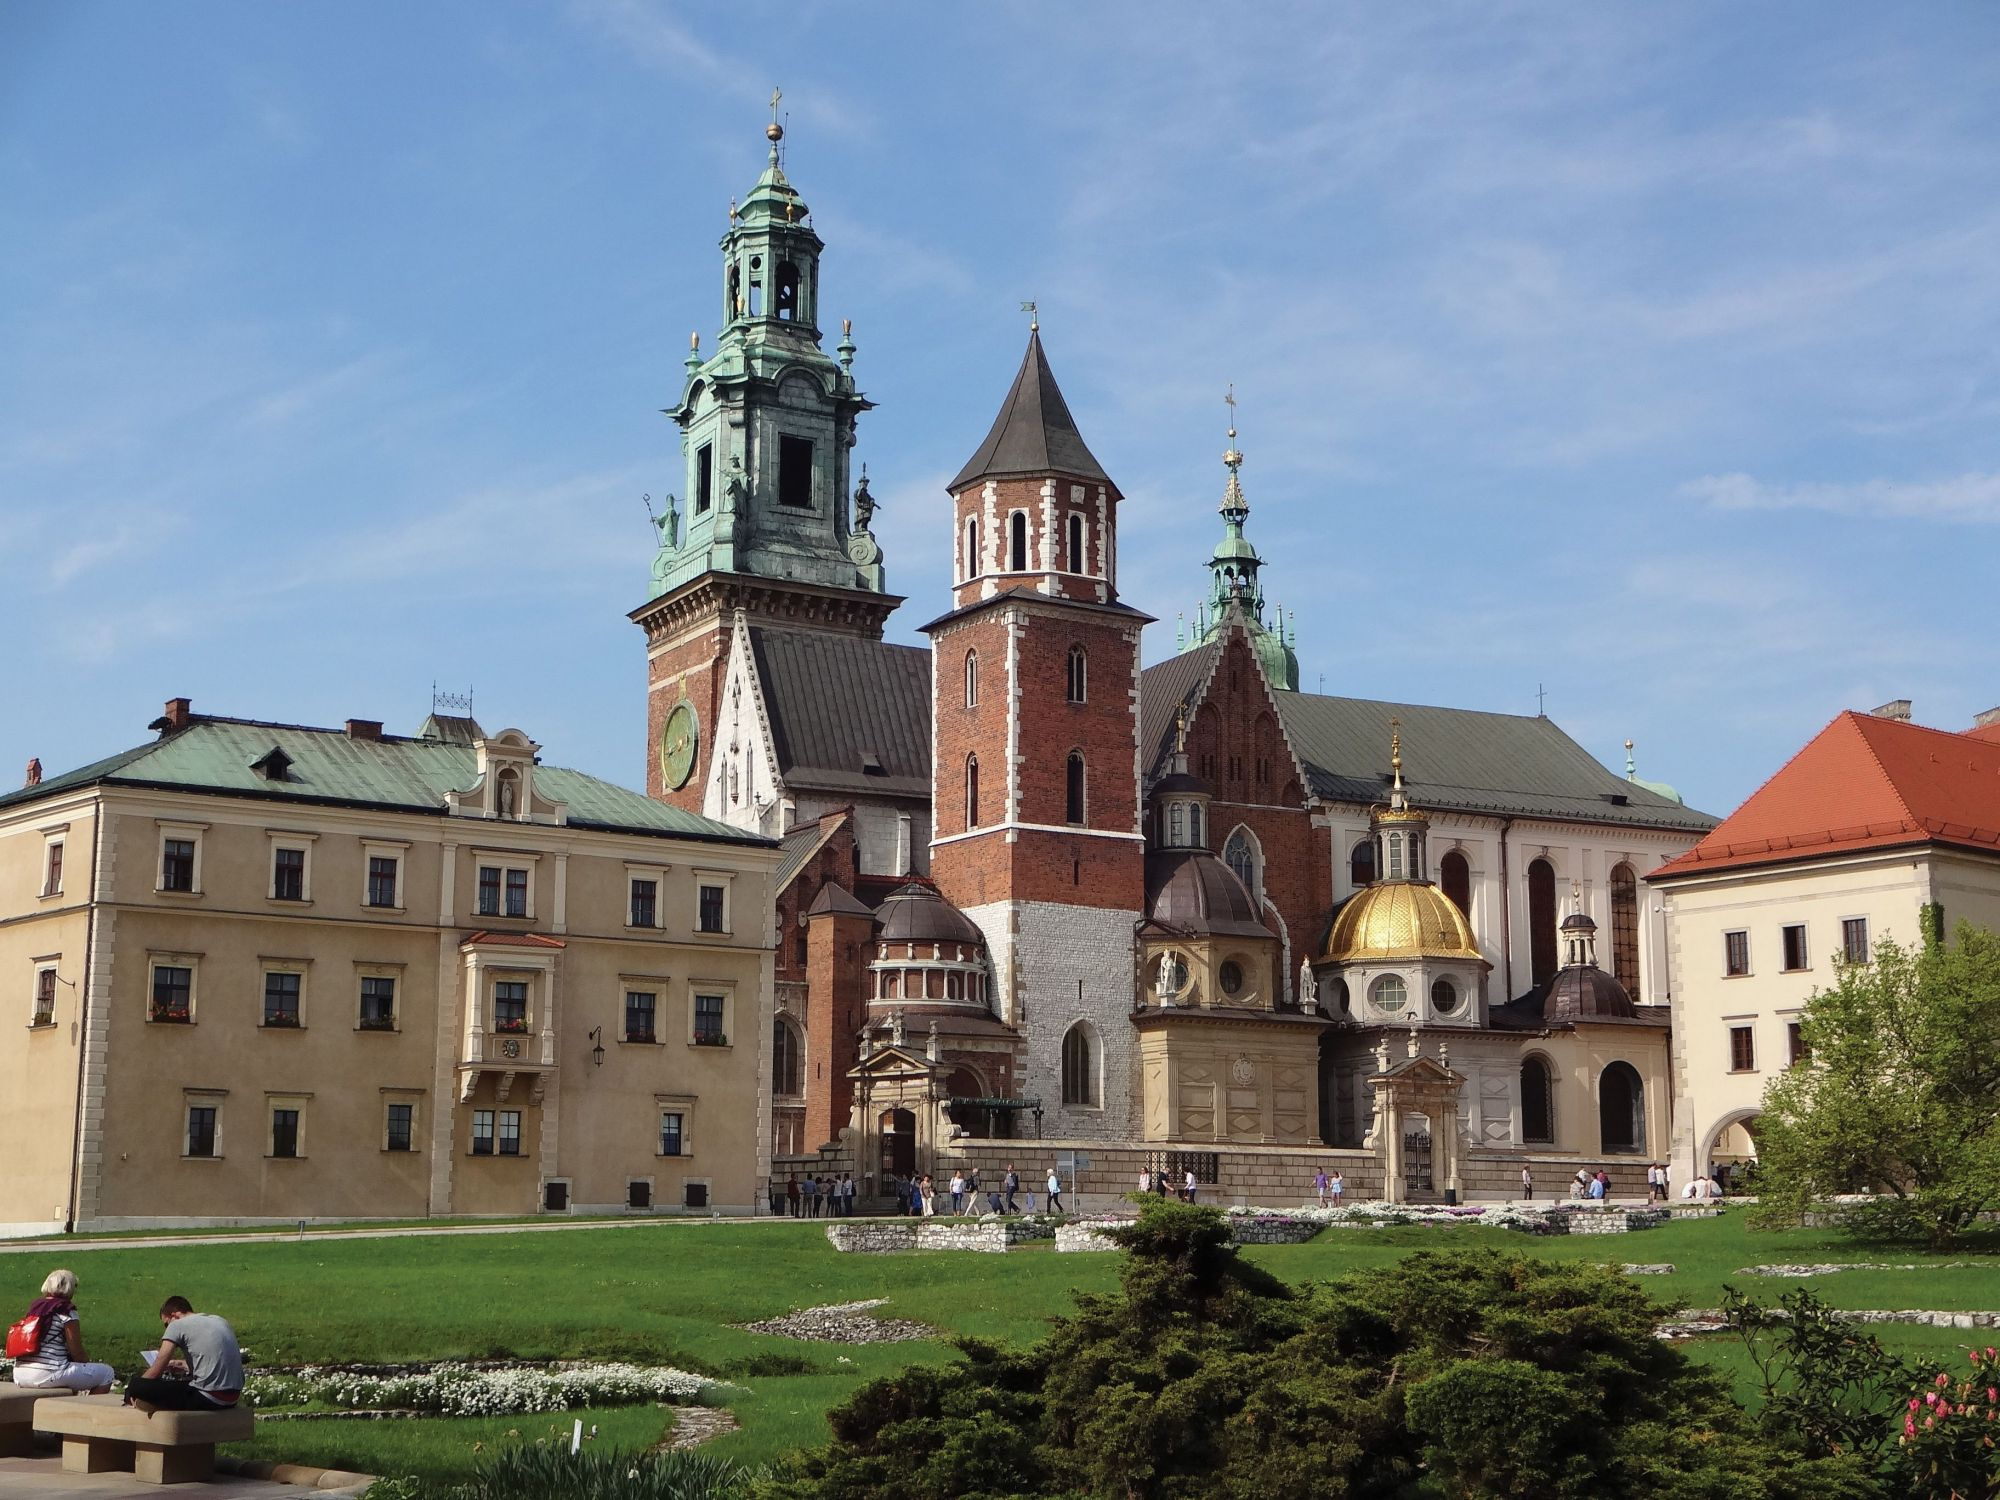 Krakow: Lessons From History